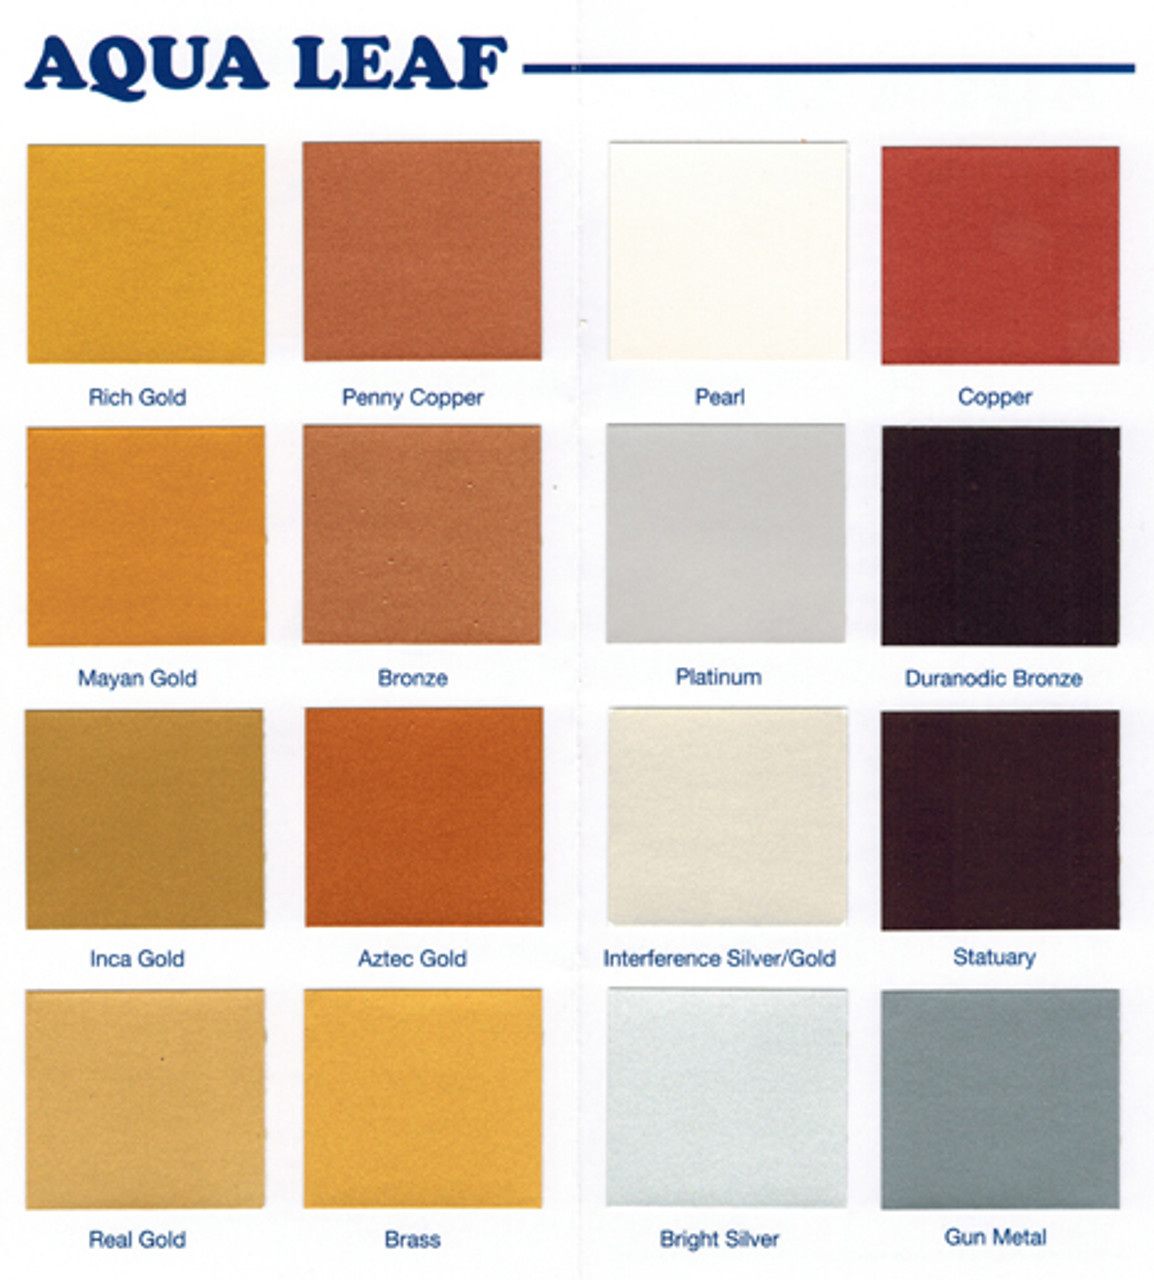 Ronan Aqua Leaf Colors